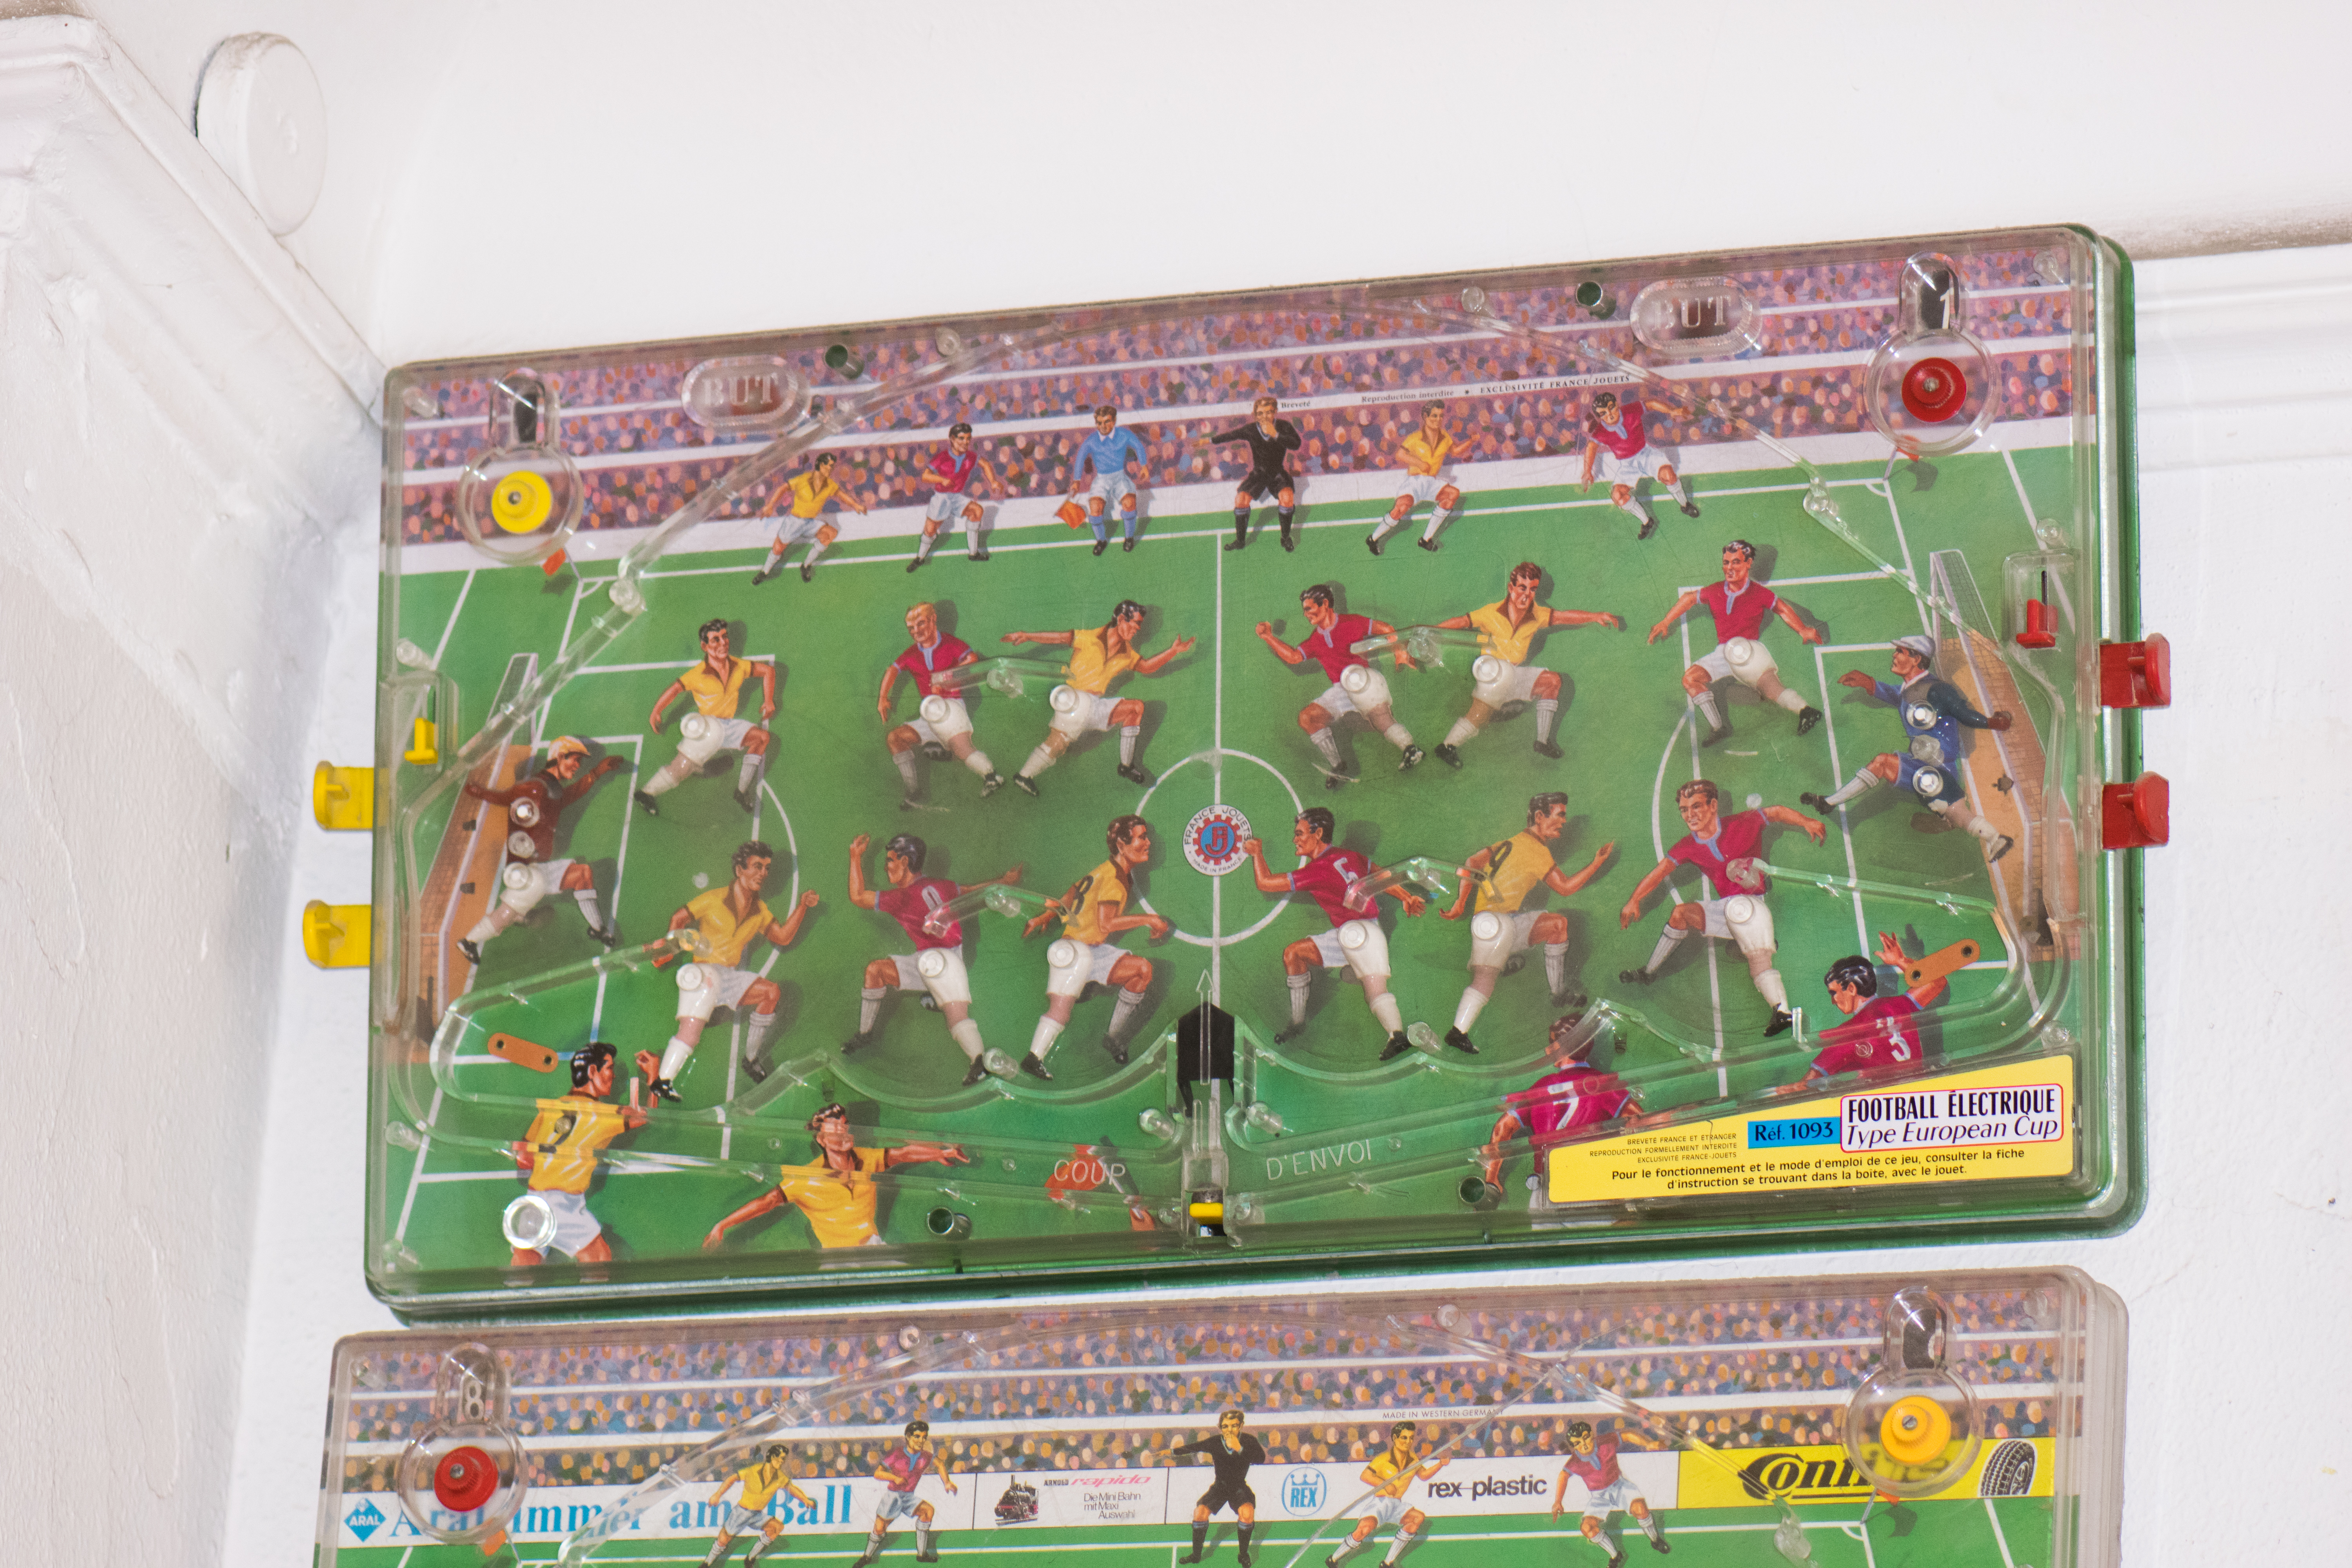 FileAntique Electric Football Arcade Game 29129298842